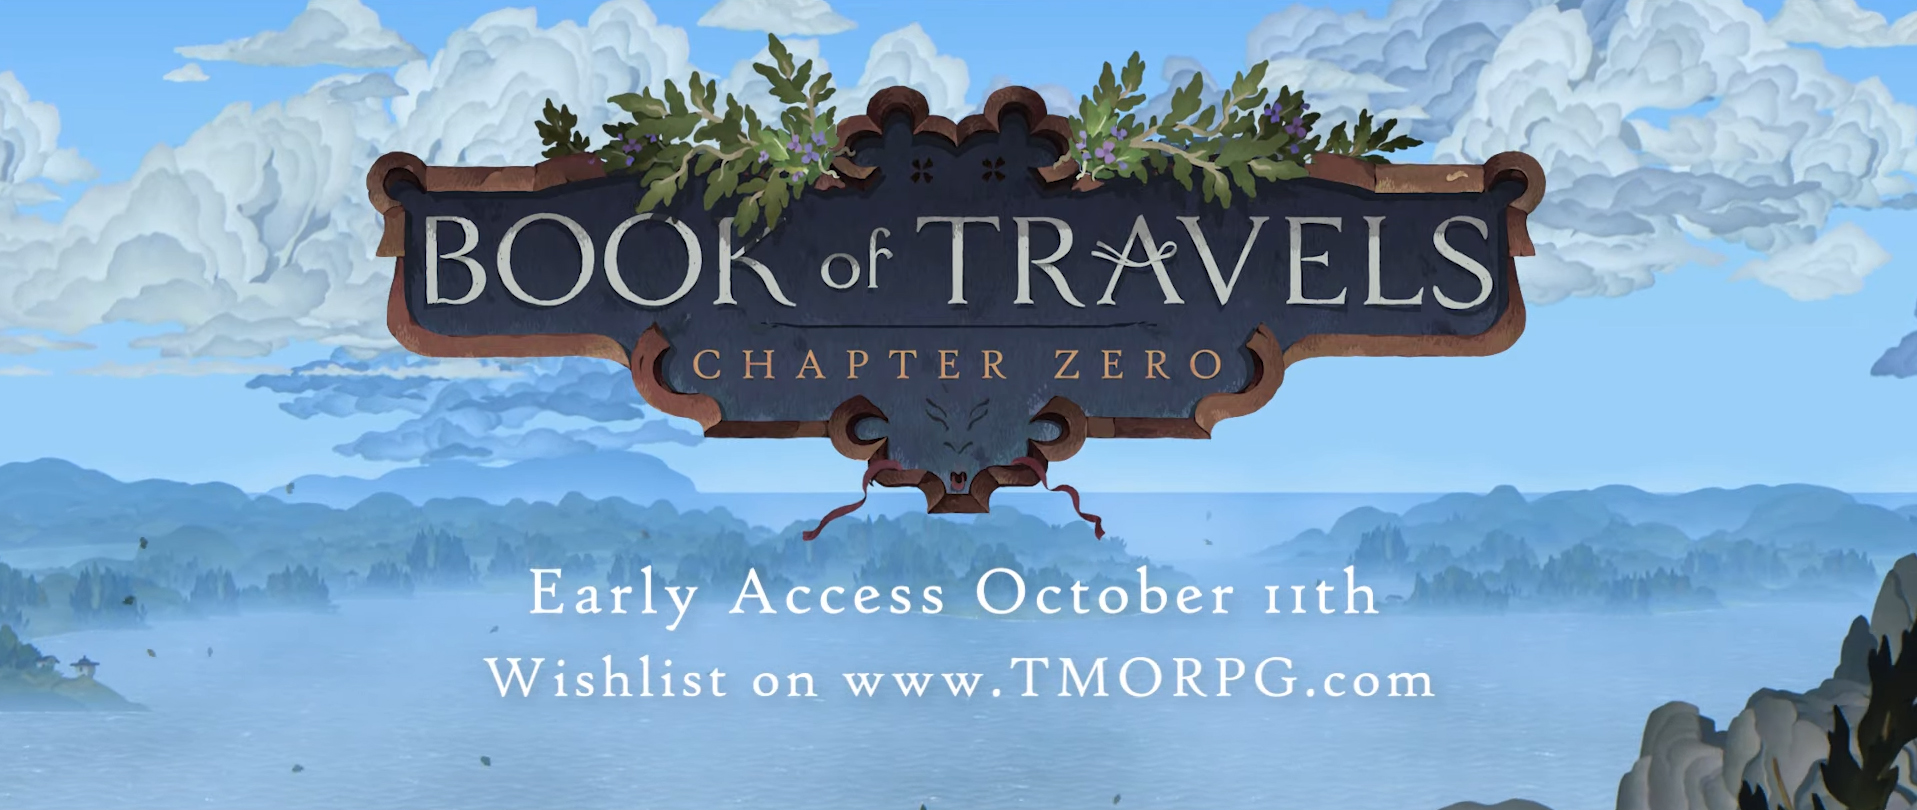 Book of Travels Will Enter Early Access on October 11th